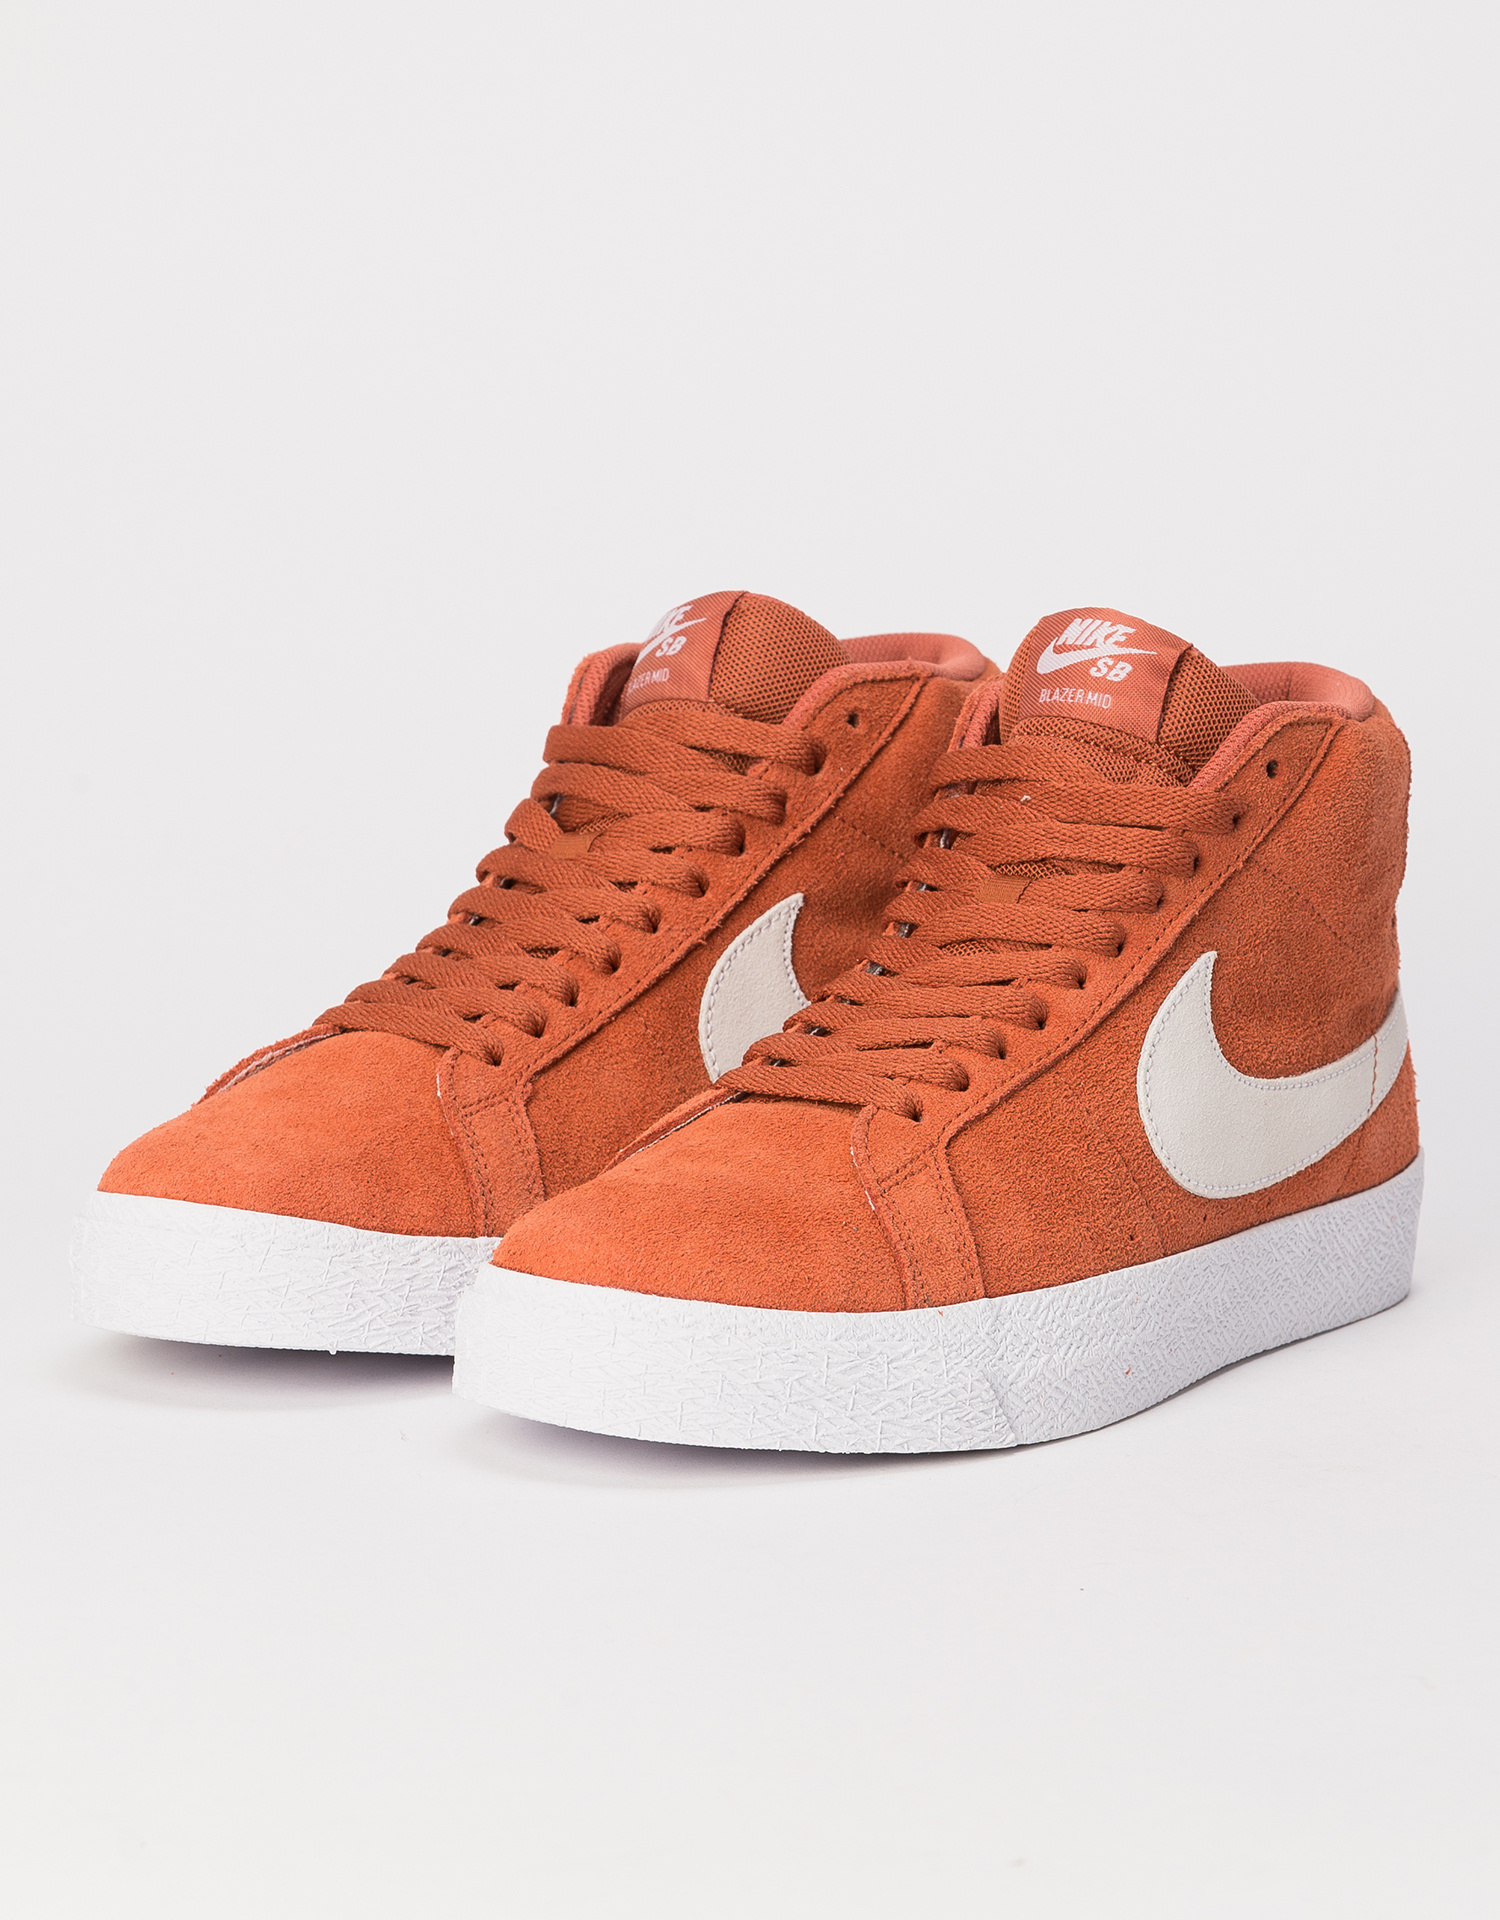 Nike SB Blazer Mid dusty peach/white